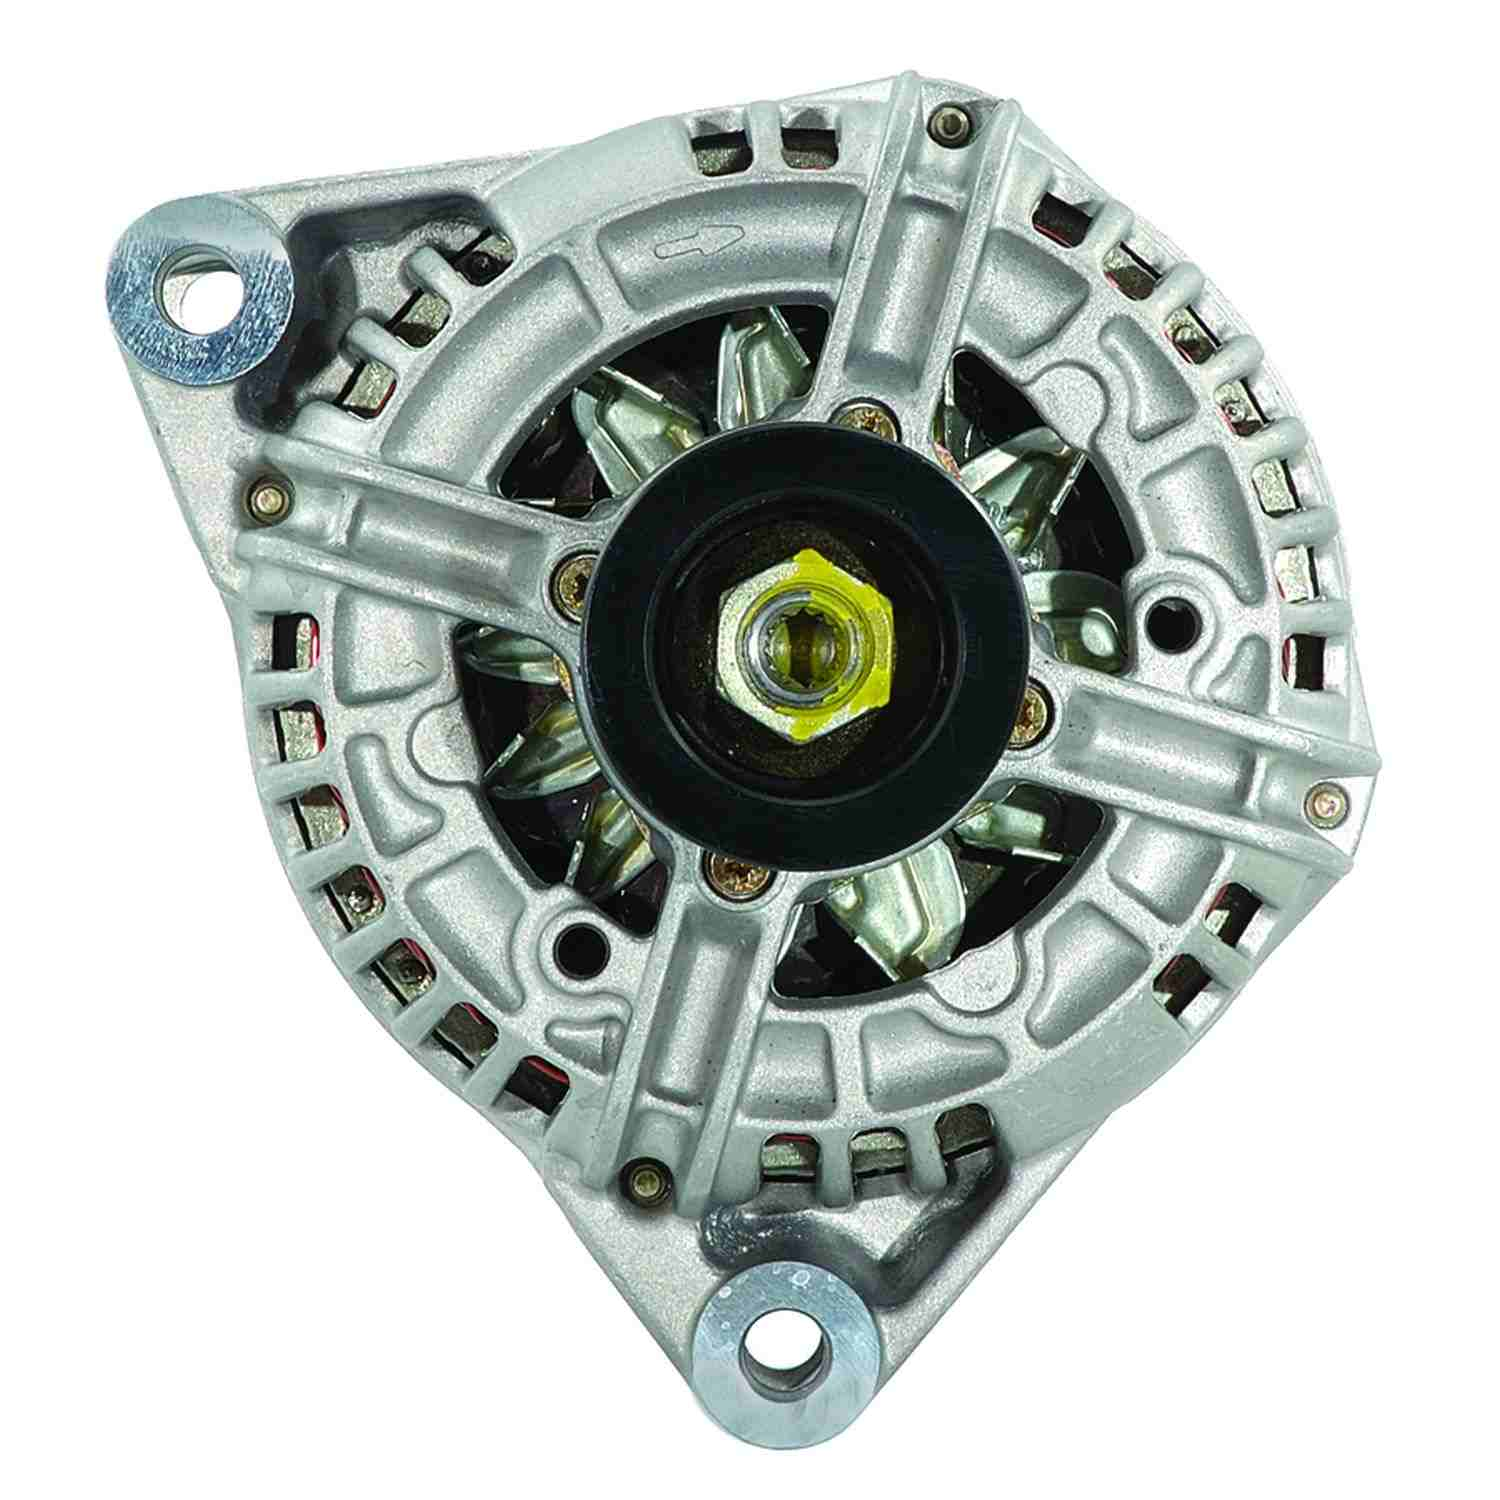 ACDELCO GOLD/PROFESSIONAL - Alternator - DCC 335-1257